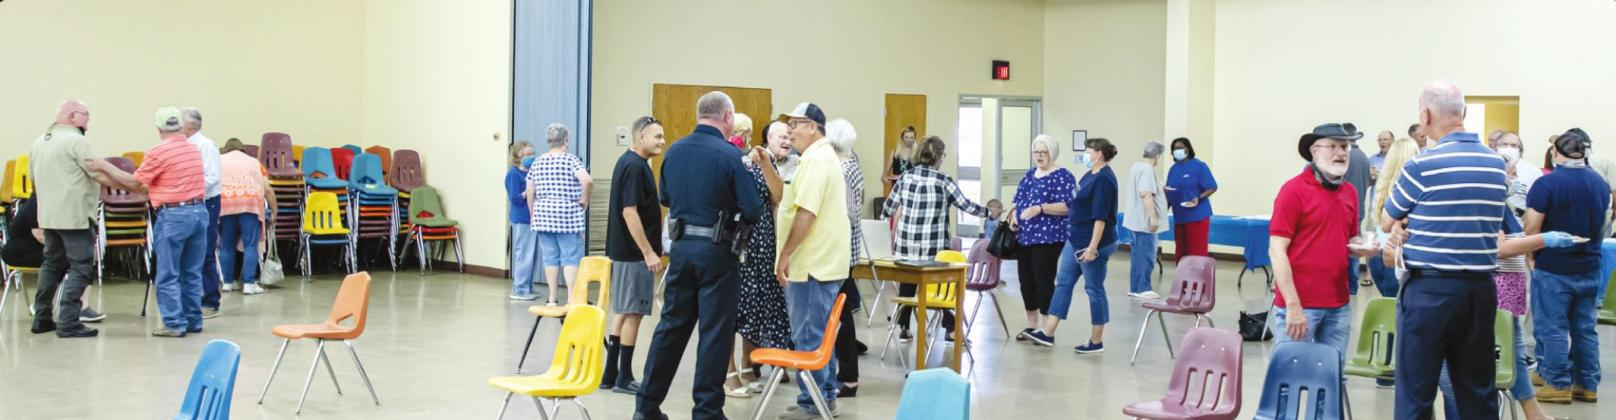 Great Turnout for the City's Meet the Chief, Aug. 18